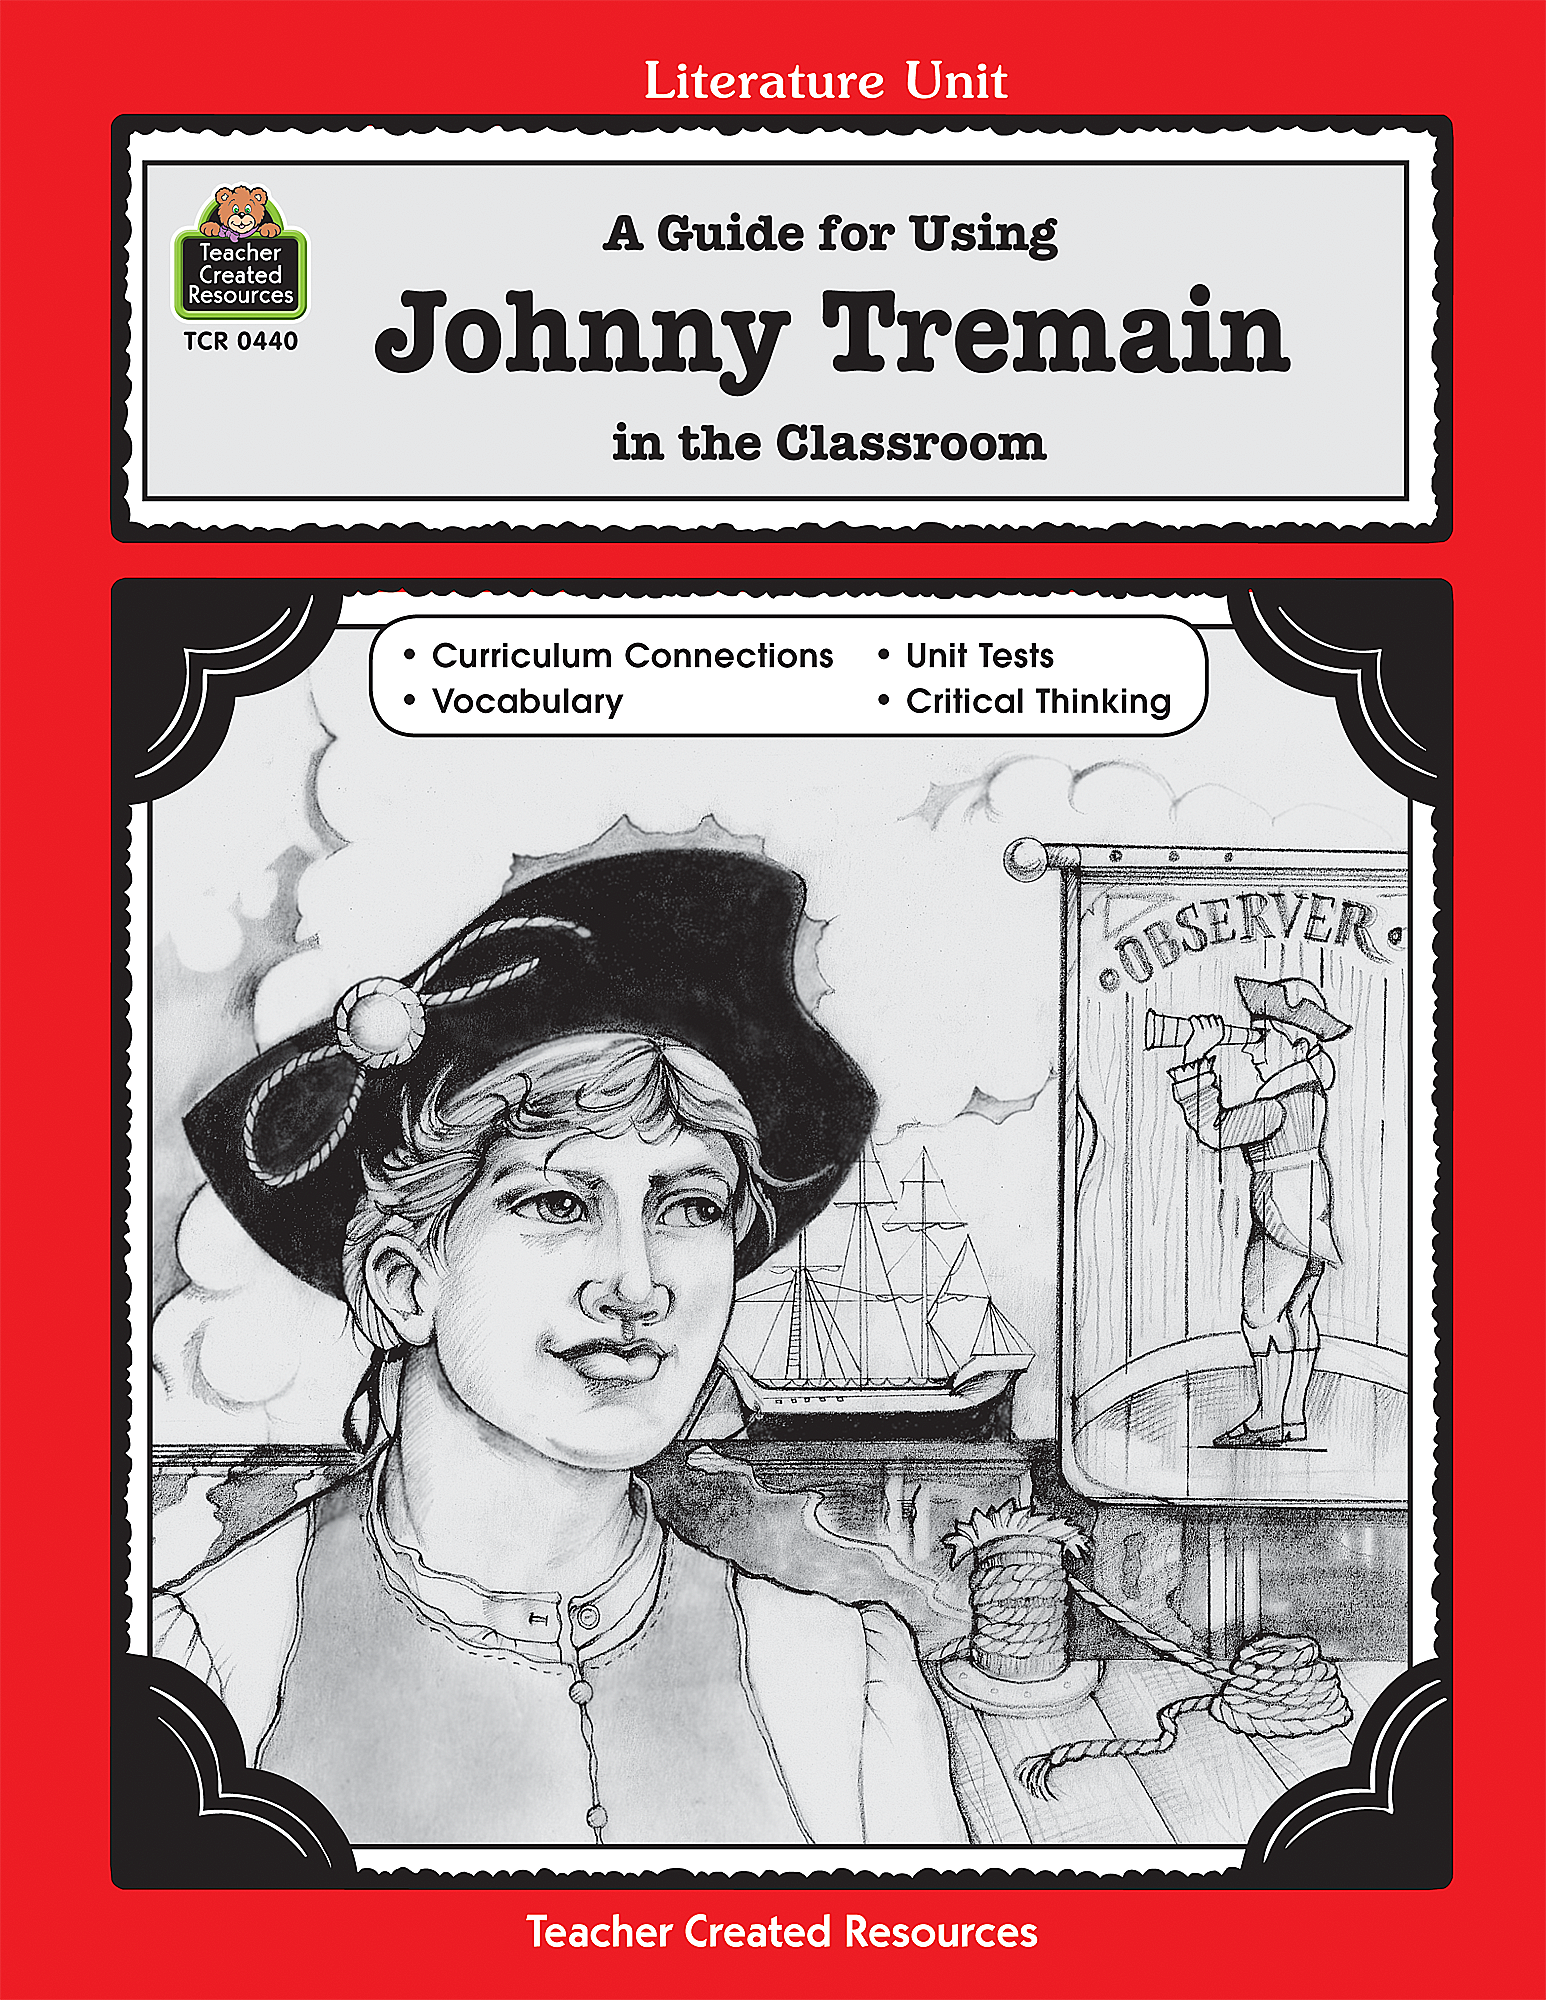 a review of the book johnny tremain Reviewed by glenn erickson as late as 1992 grade school kids were still reading the book johnny tremain, as can be seen in the simpsons' episode where bart's interest in reading improves after be.